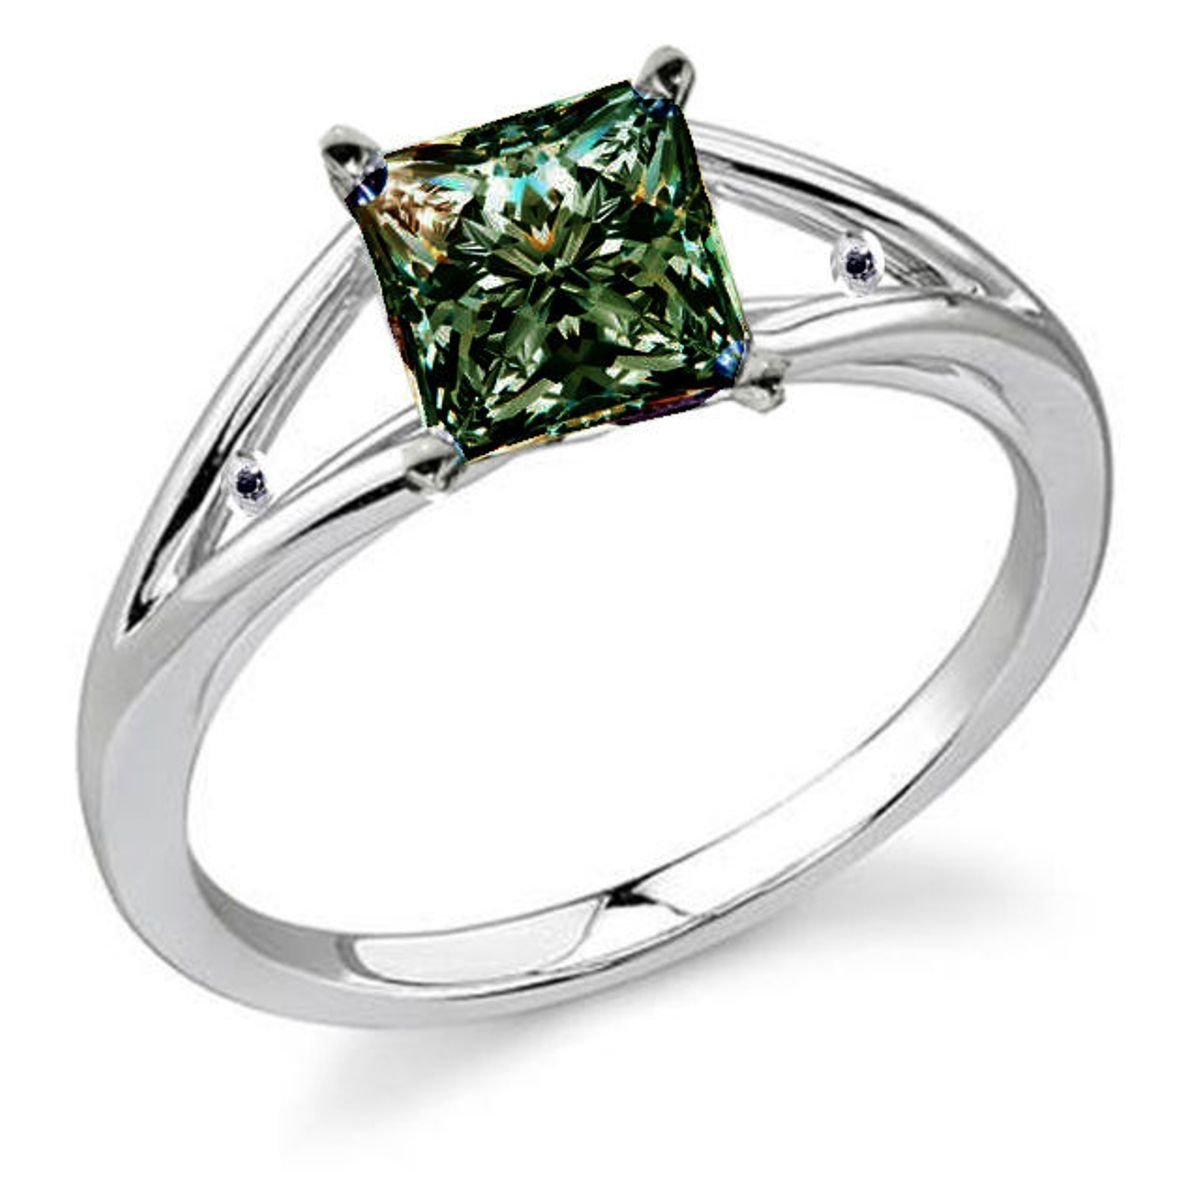 RINGJEWEL 3.65 ct VS1 Princess Moissanite Solitaire Engagement Silver Plated Ring Green Color Size 7